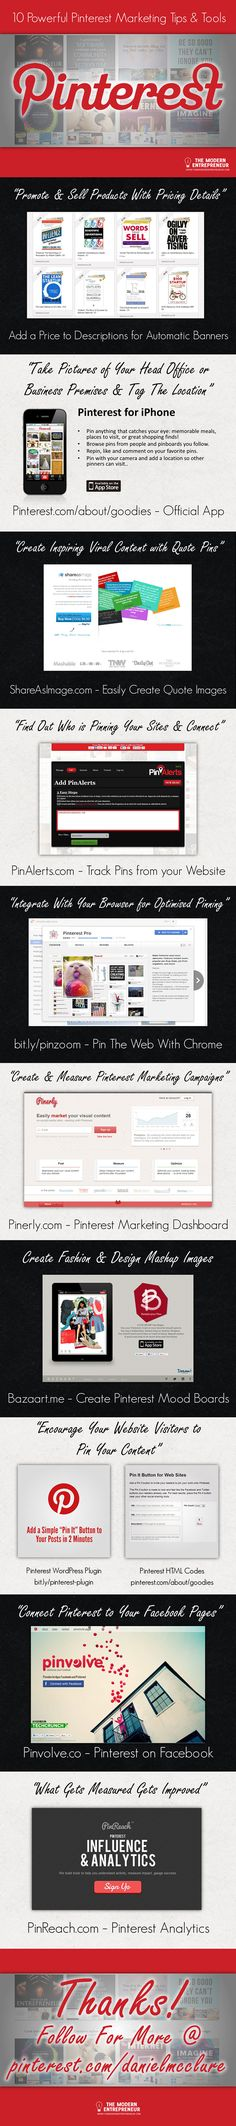 Pinterest Marketing Tools & Tips Infographic